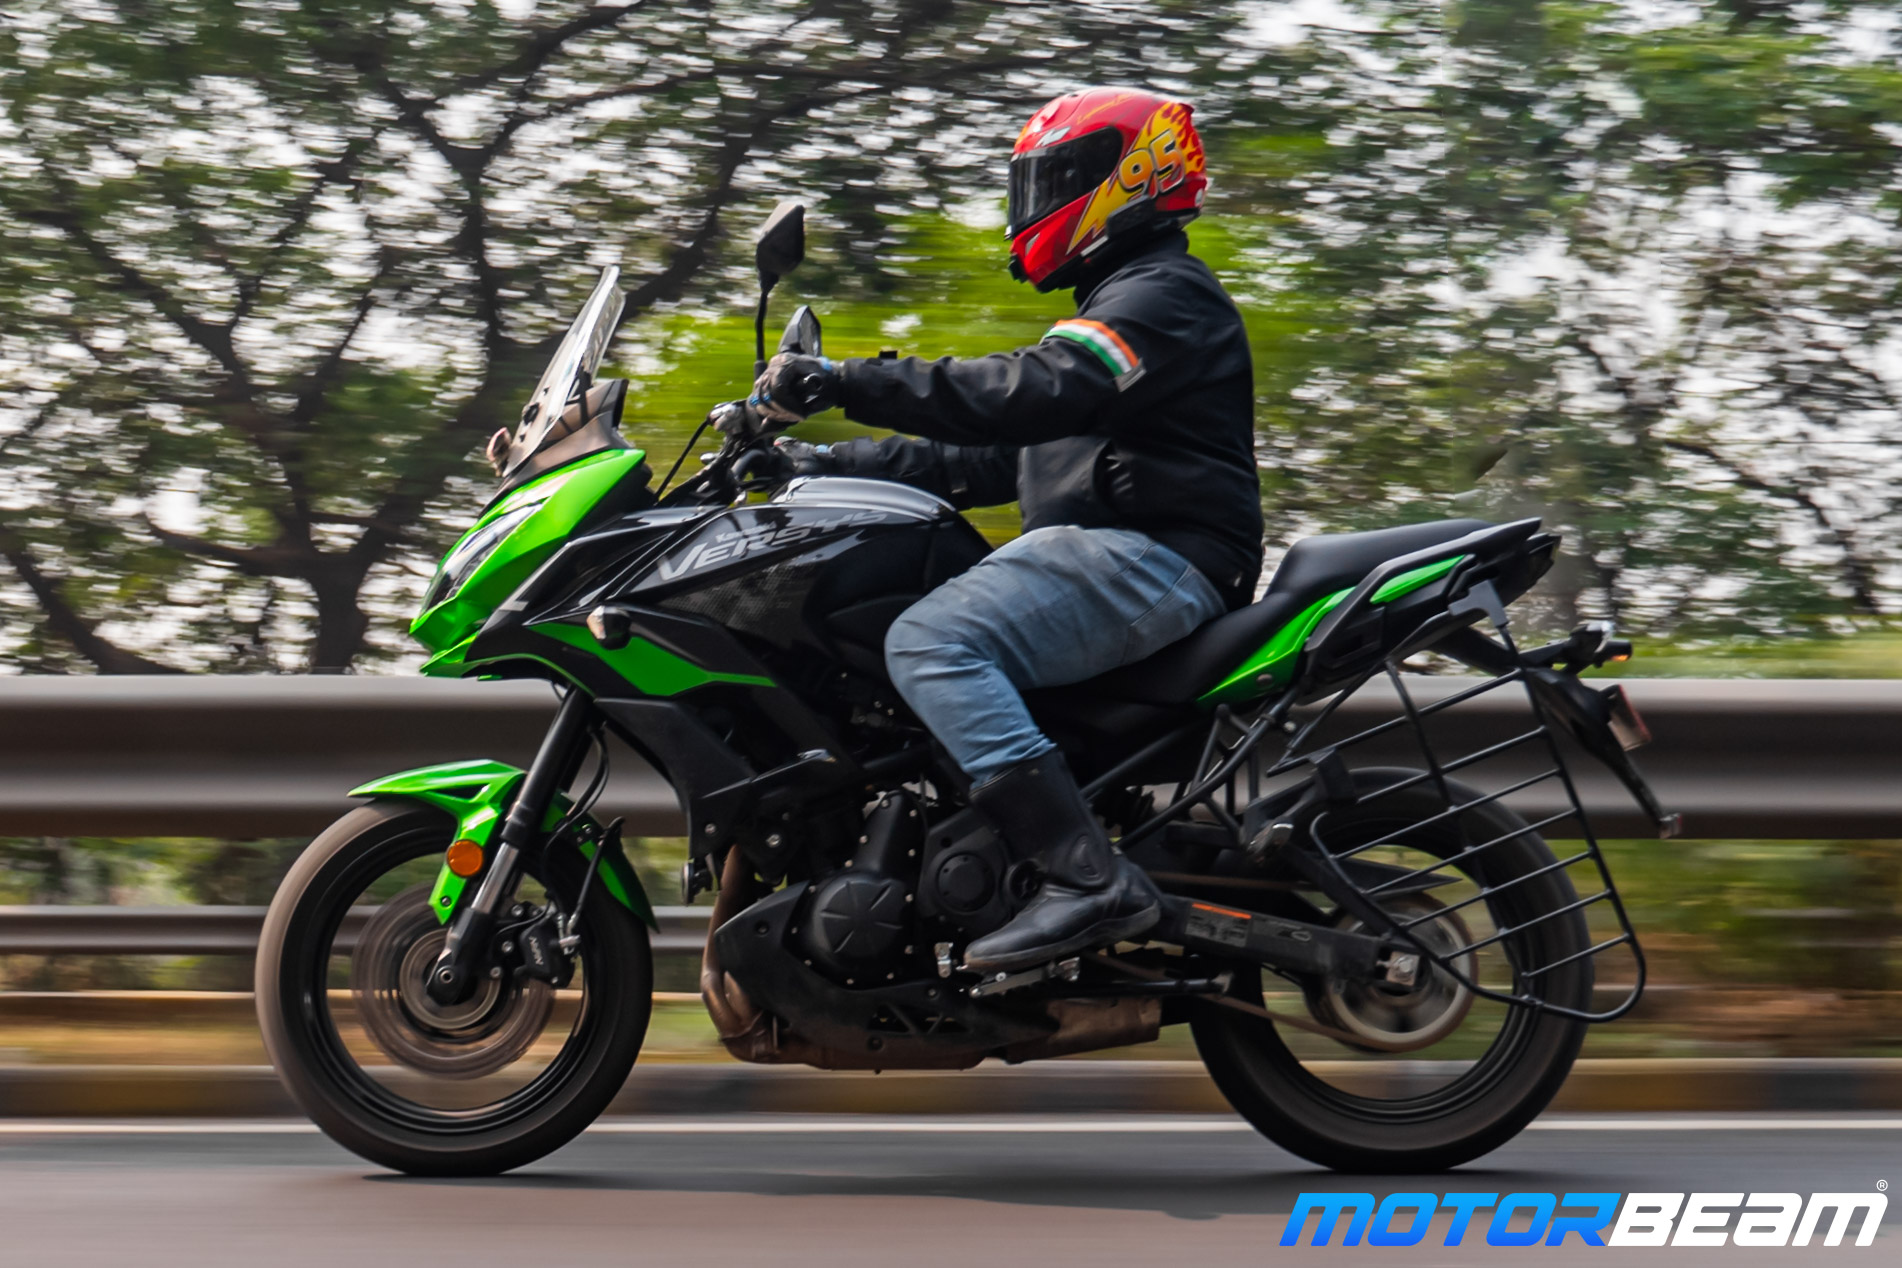 2021 Kawasaki Versys 650 Review 35